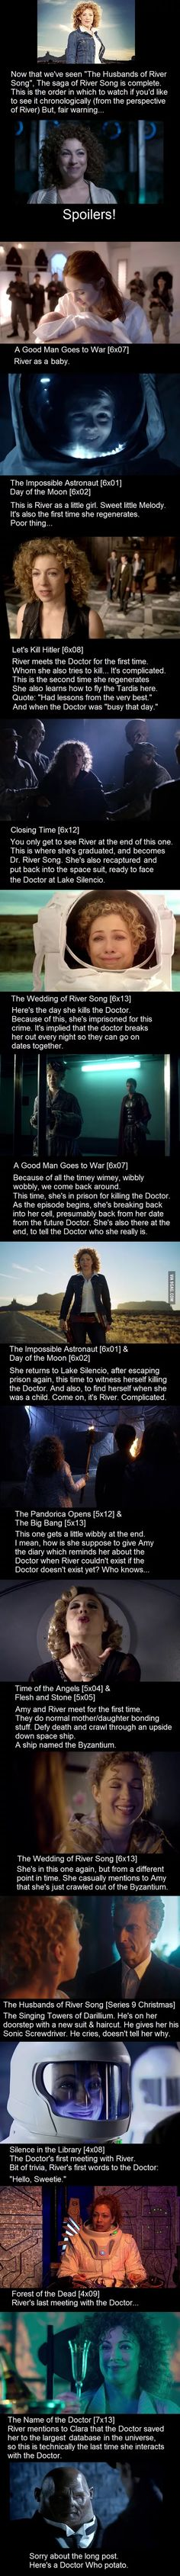 River Song's Timeline. Watch in this order if you'd like to see River's journey in Doctor Who River Song's Timeline. Watch in this order if you'd like to see River's journey in Doctor Who … Alex Kingston, Fandoms Unite, River Song Timeline, Serie Doctor, Journey, Don't Blink, Torchwood, Geronimo, To Infinity And Beyond